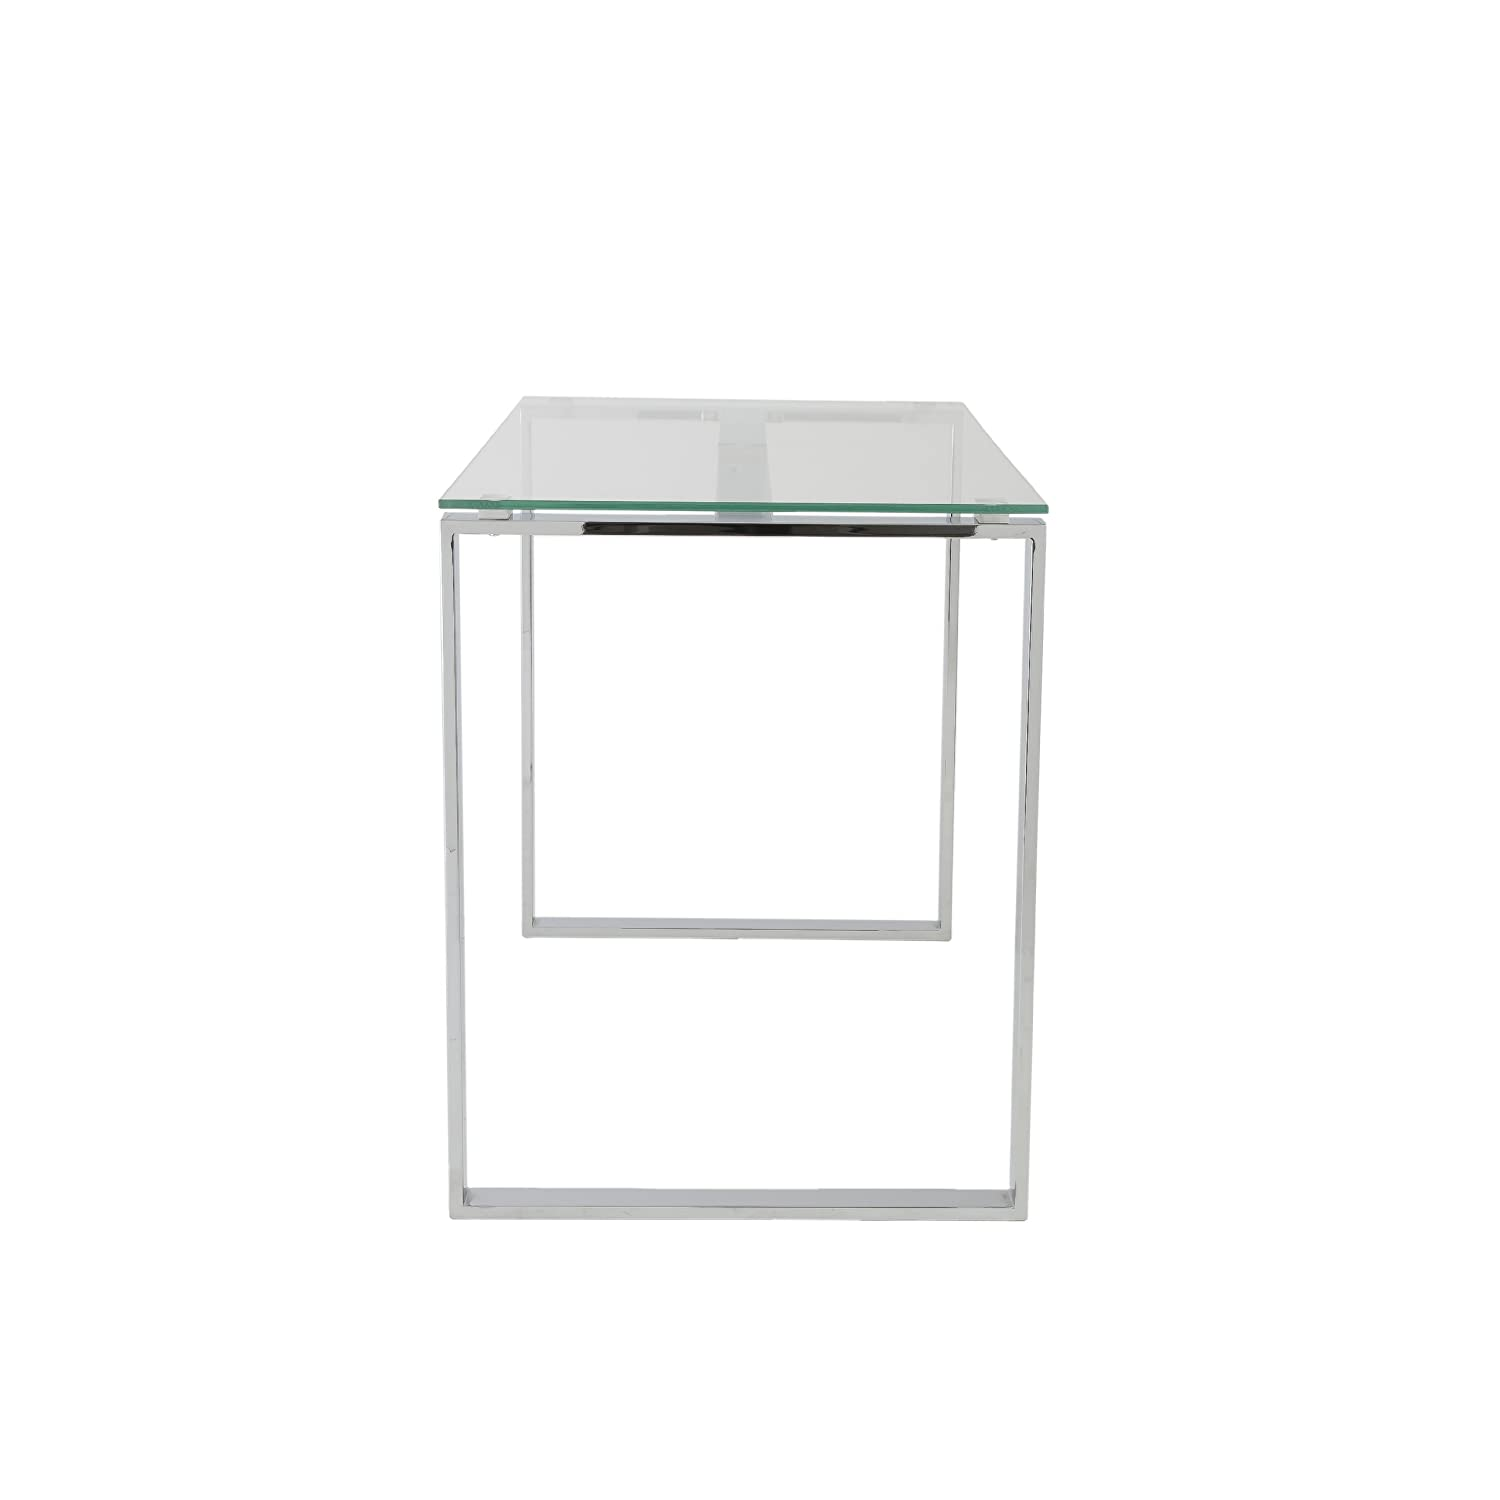 chrome office desk. Amazon.com: Eurø Style Diego Clear Glass Top Desk With Polished Stainless Steel Base: Kitchen \u0026 Dining Chrome Office